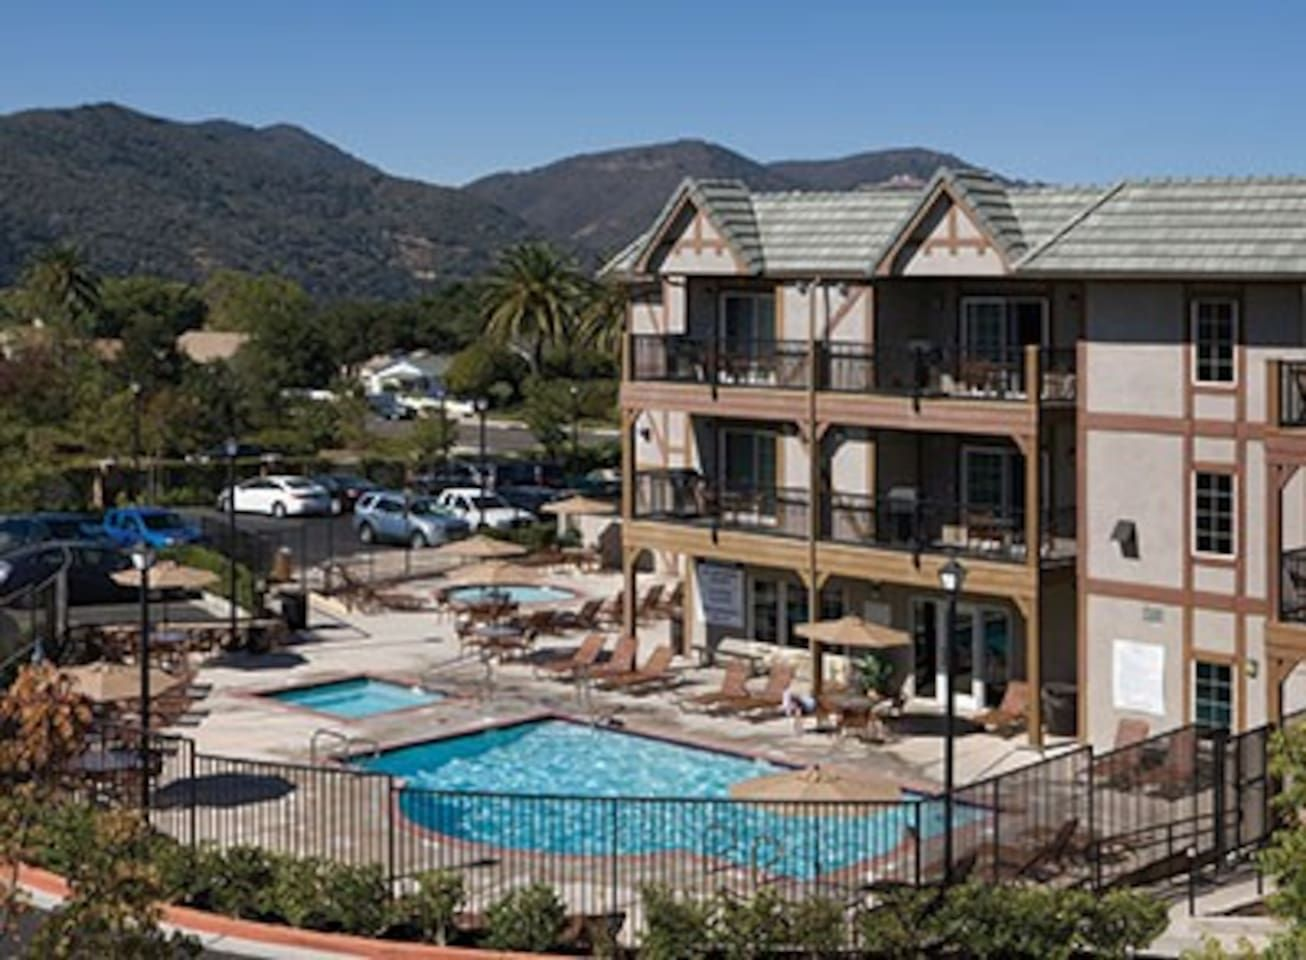 Solvang bdrm twin condo resort serviced apartments for rent in